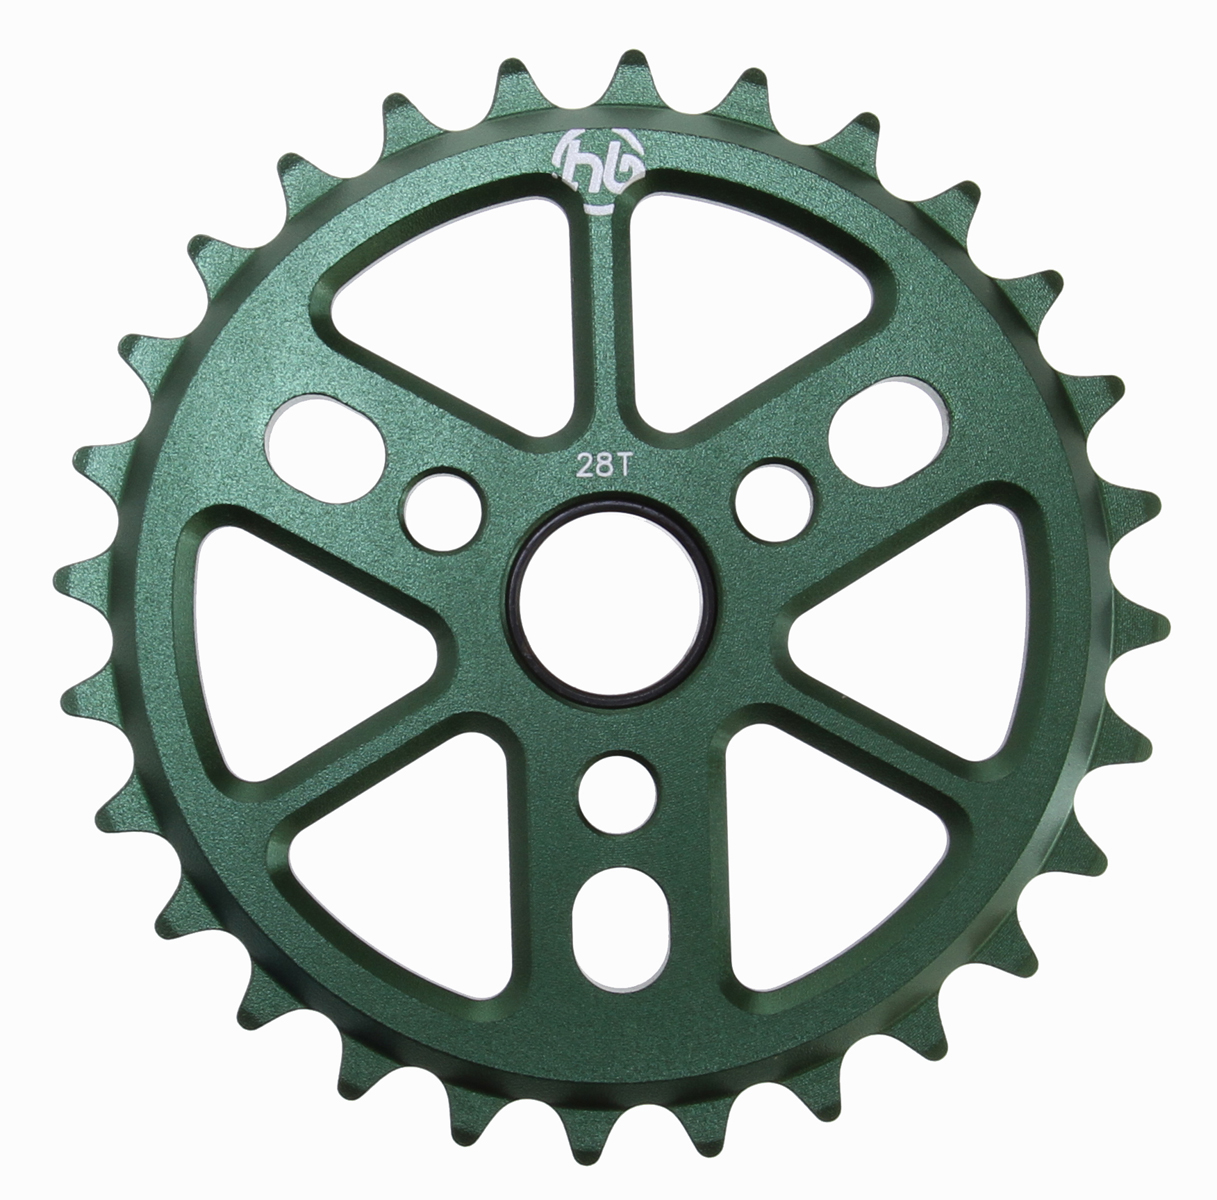 BMX Made from 6061 Aluminum, this sleek and lightweight sprocket has weight saving cut outs without sacrificing strength. Key Features of the Hoffman Dinky 6061 Alloy Sprocket Bronze 28T: Machined 6061 Aluminum 5.5mm thick 3 crank position holes 2.4oz (25t) - $18.36